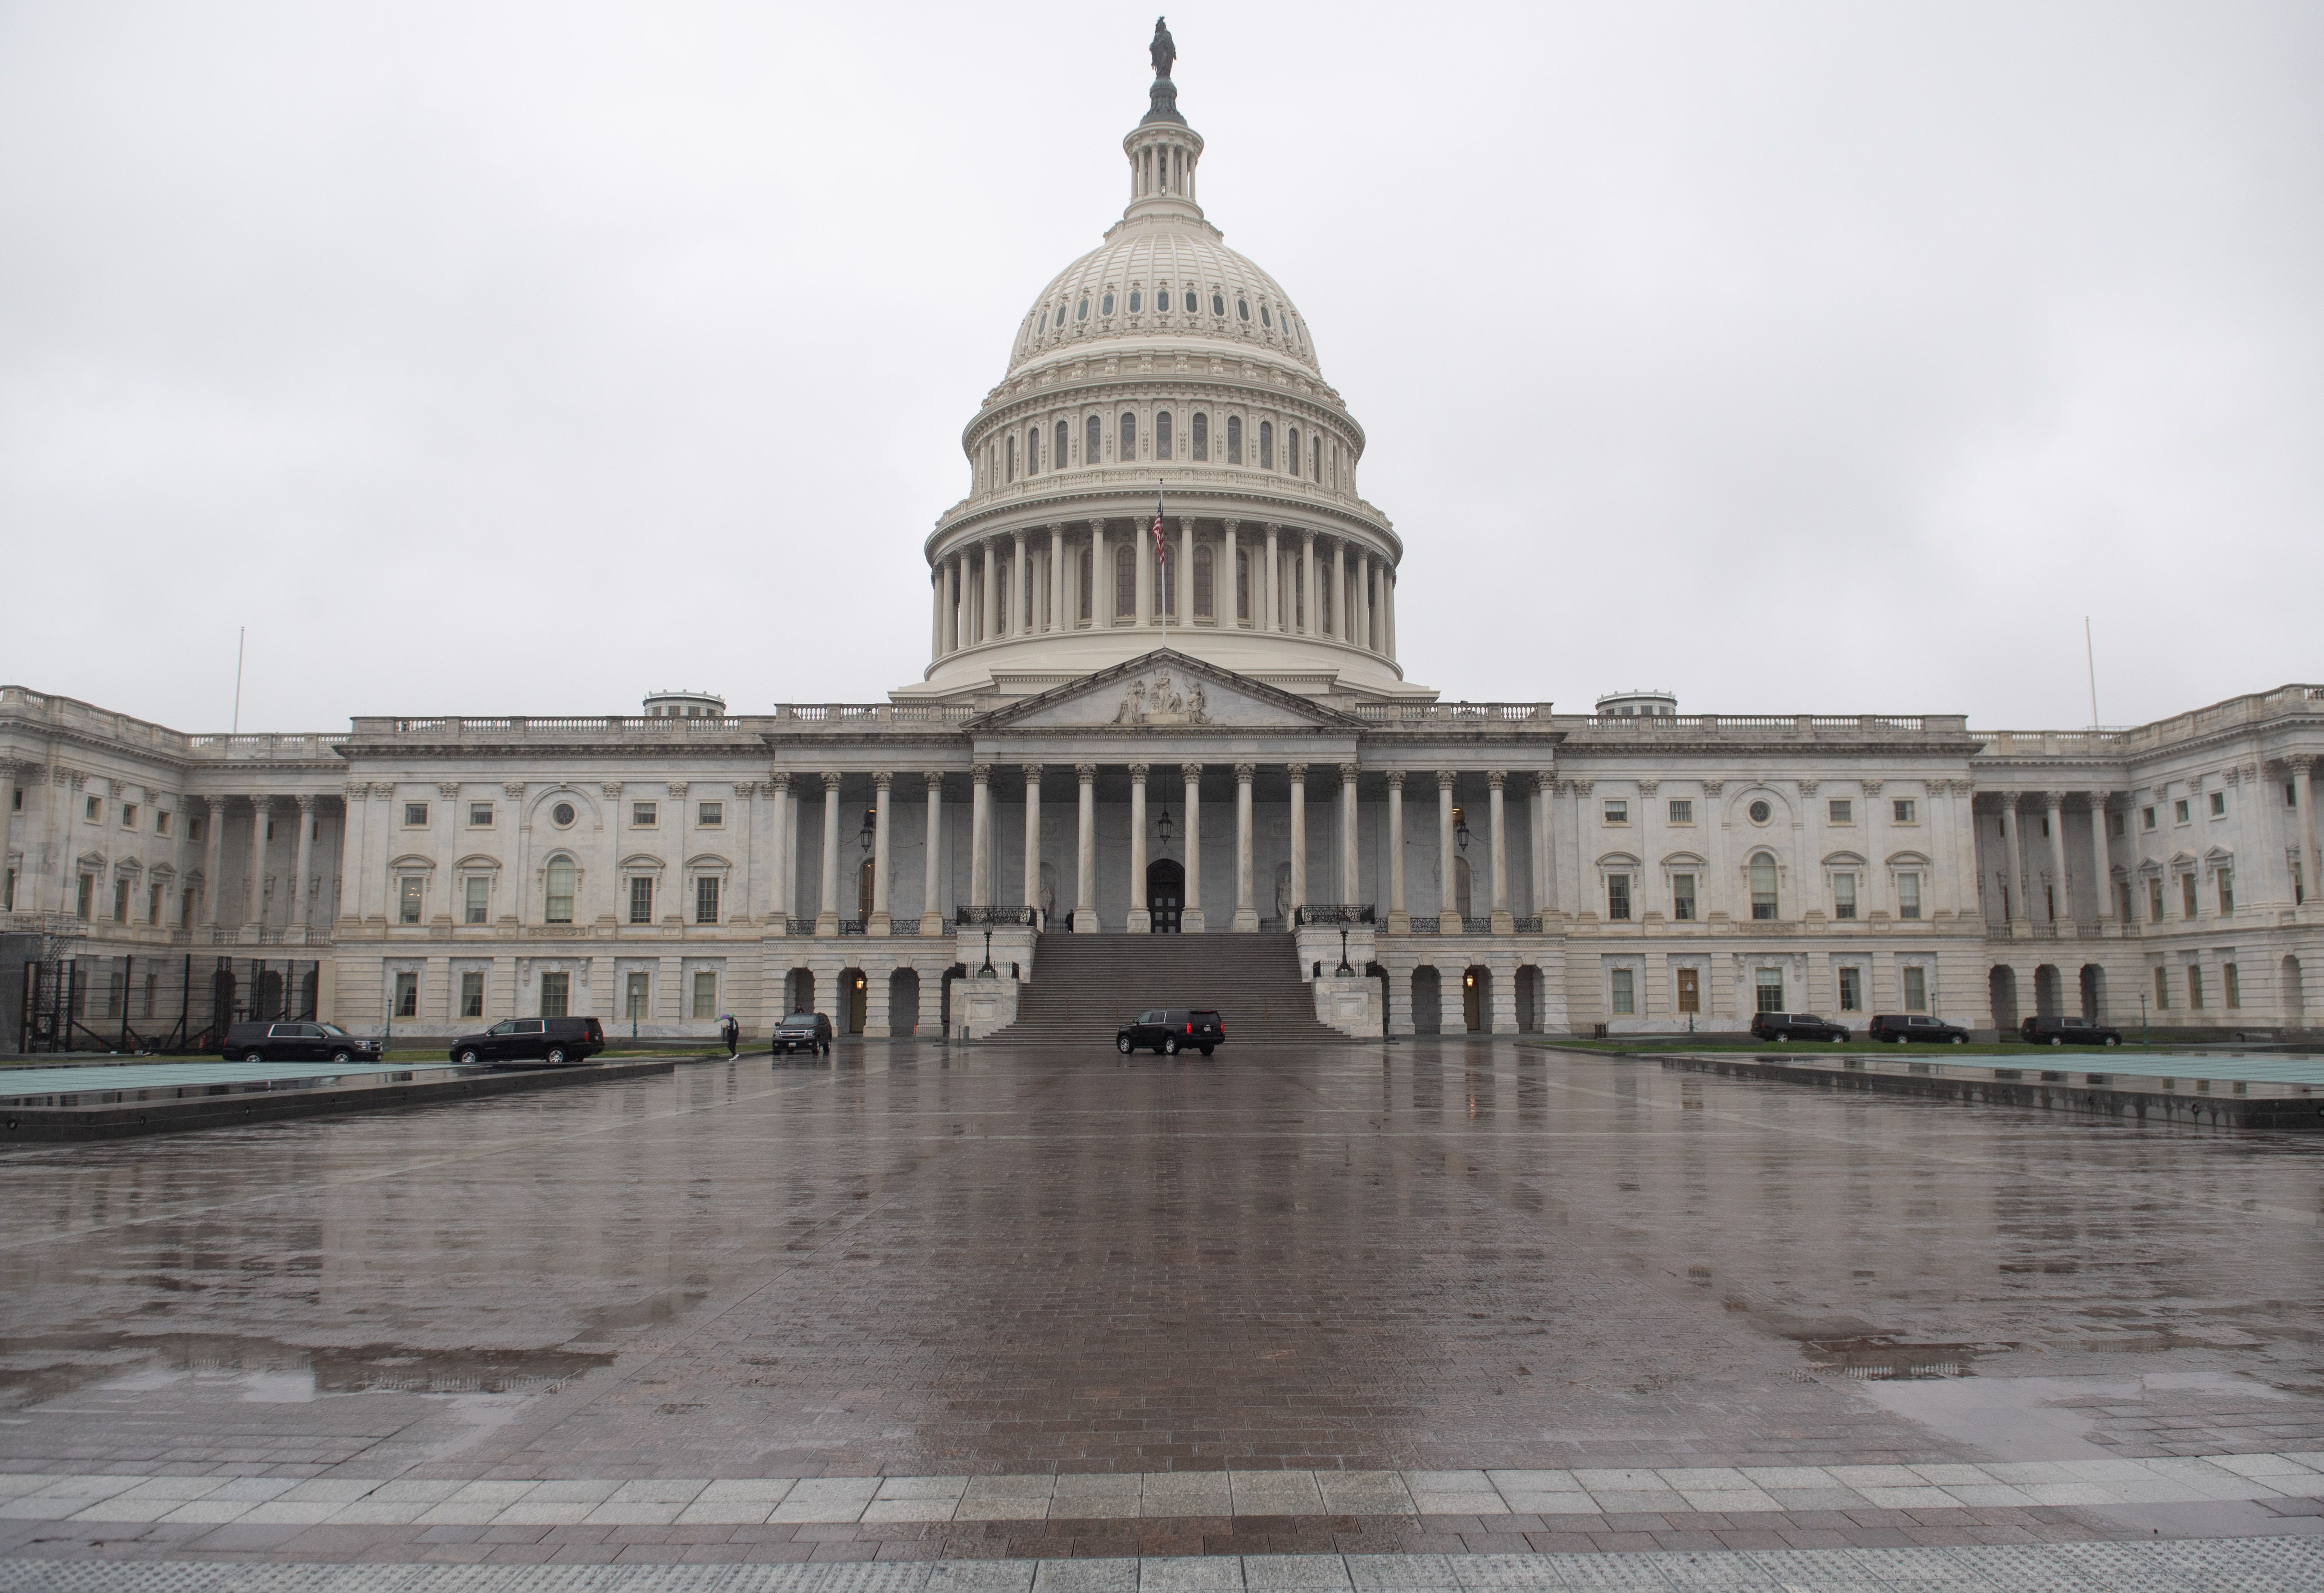 The US Capitol is seen in Washington, DC, March 23, 2020.